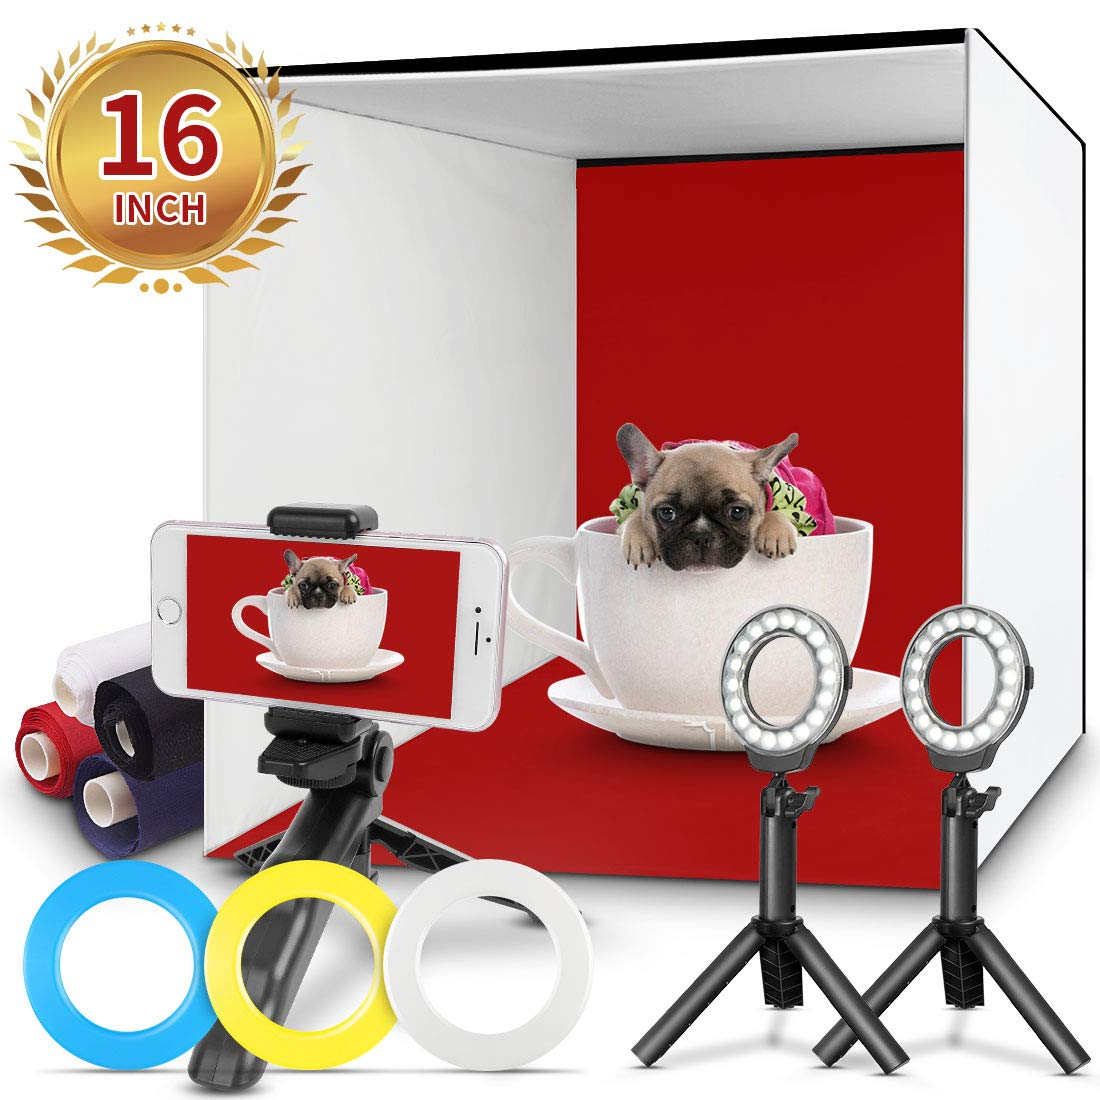 Photo Studio Box, FOSITAN 16x16 inch Table Top Photo Light Box Continuous Lighting Kit with 3 Tripods, 2 LED Ring Lights, 4 Color Backdrops & a Cell Phone Holder for Photography by FOSITAN